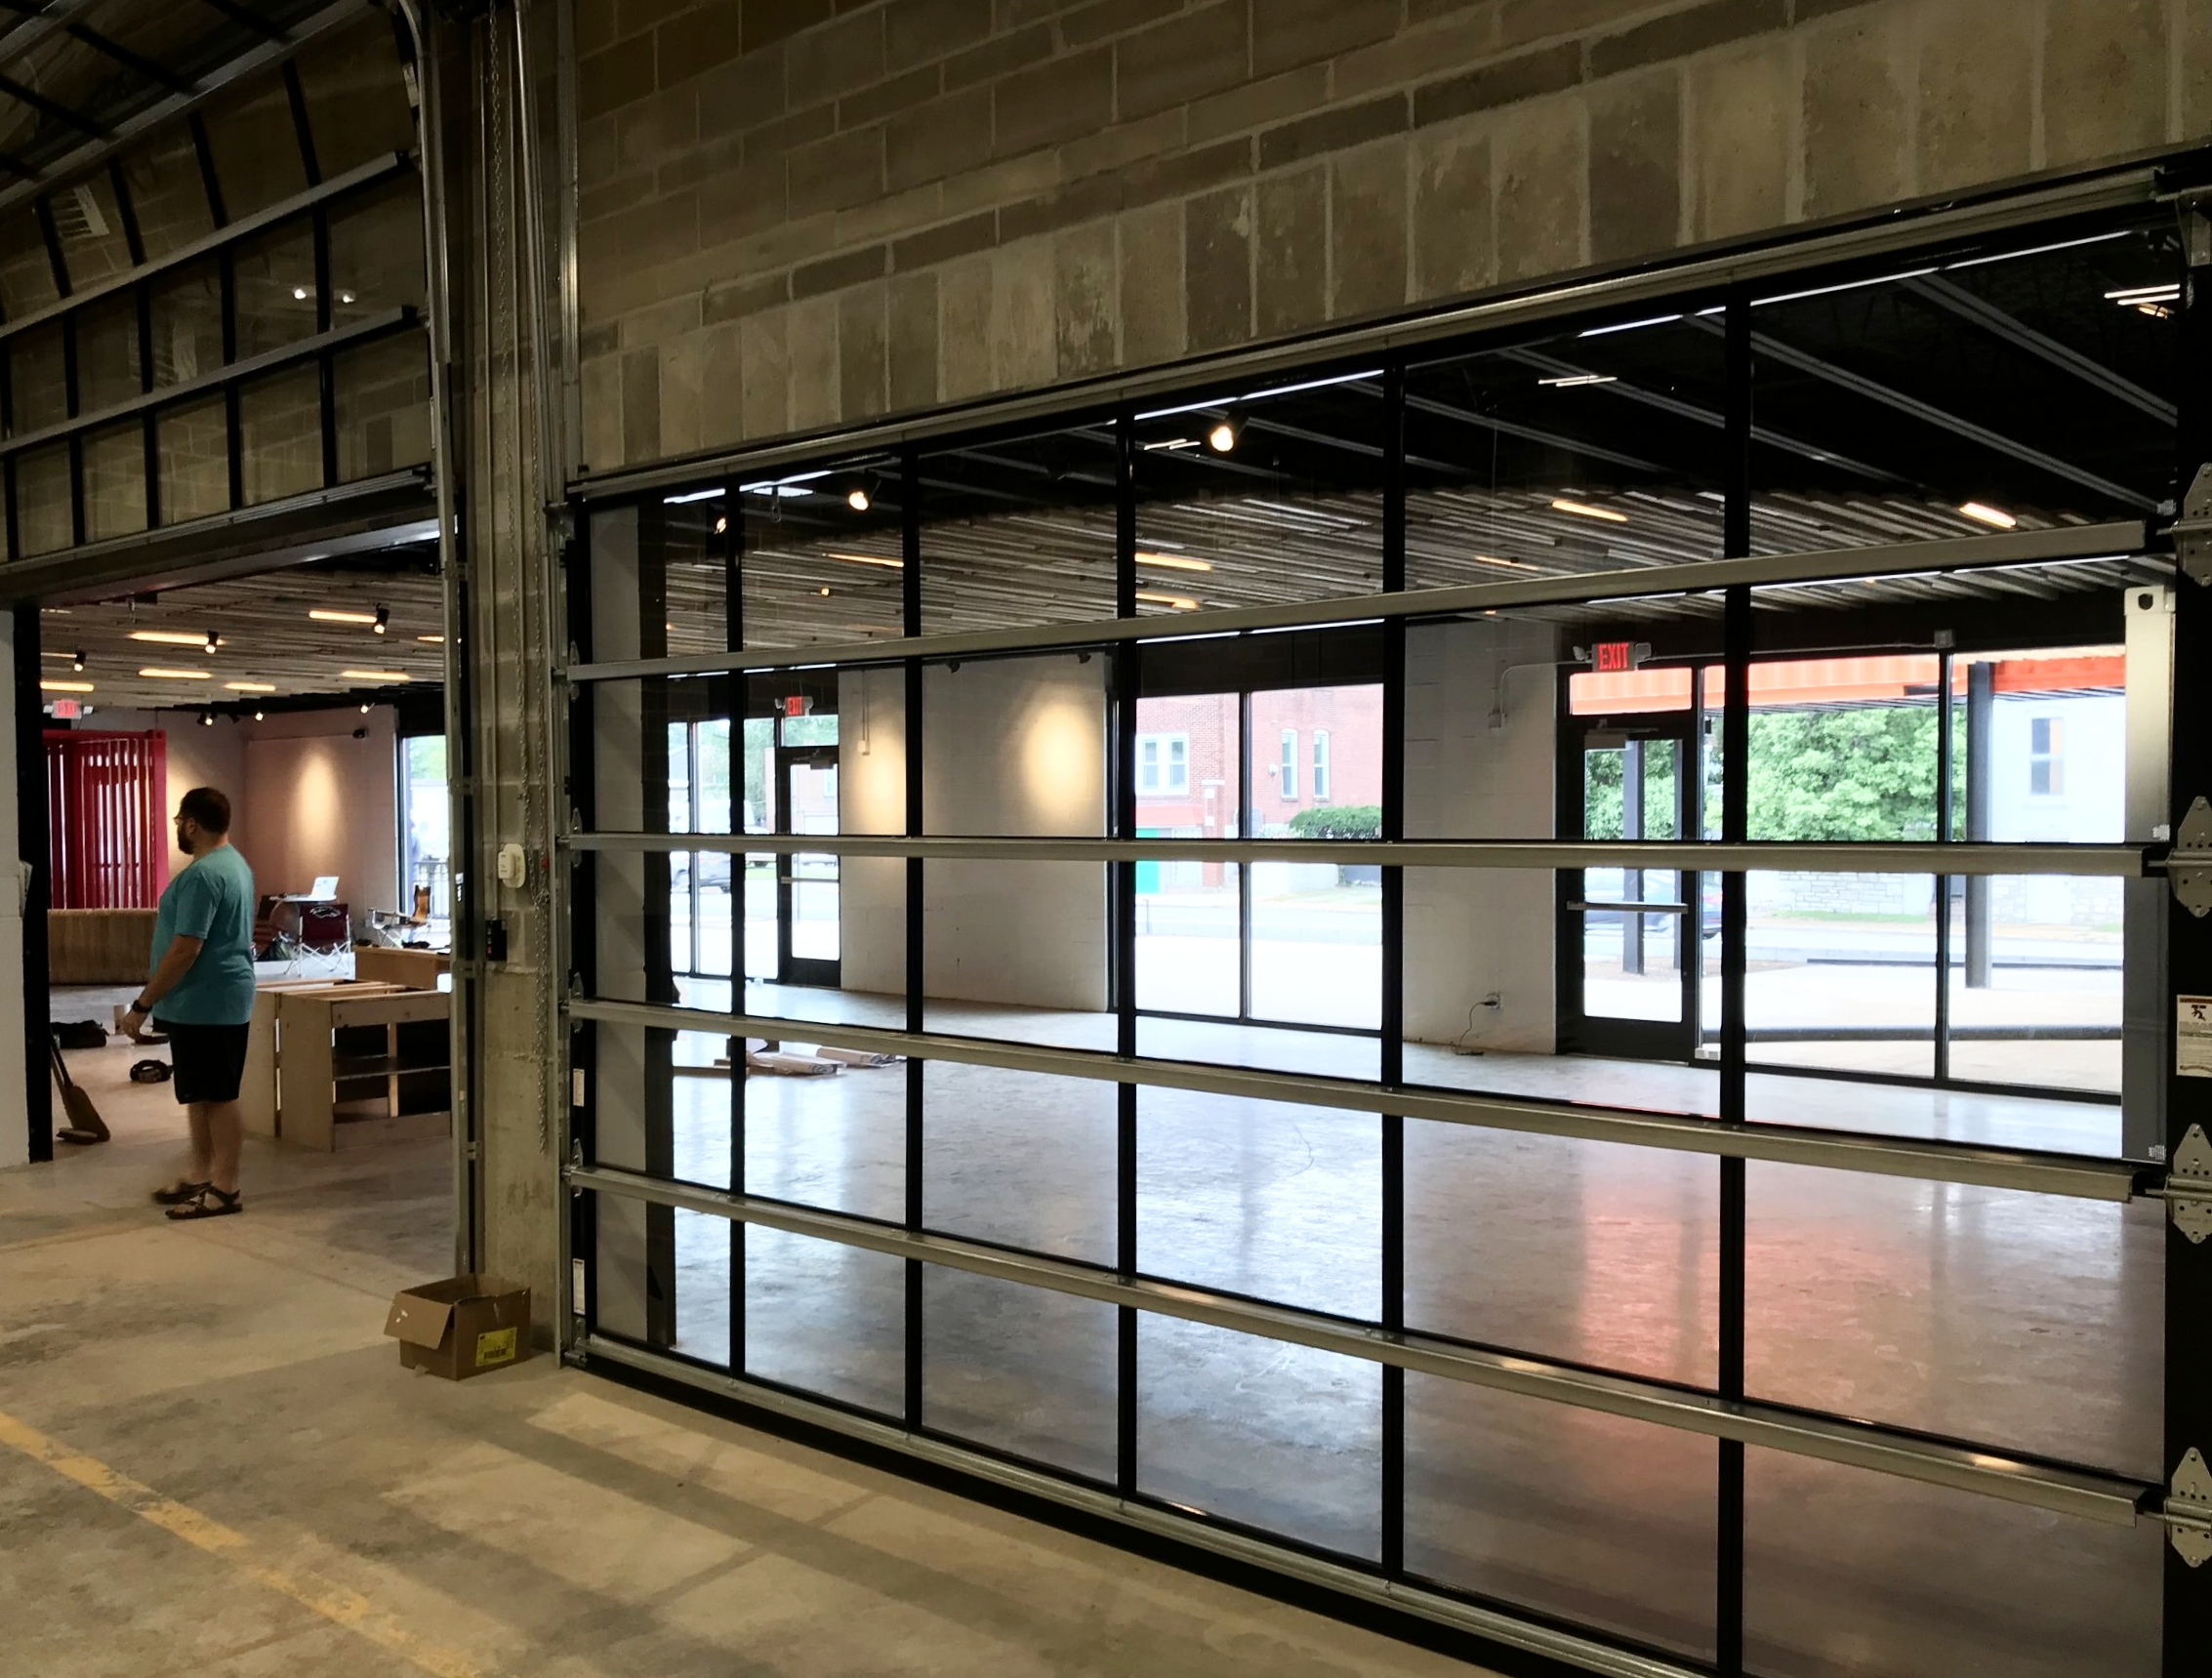 Glass garage doors open up from production area to tasting room -